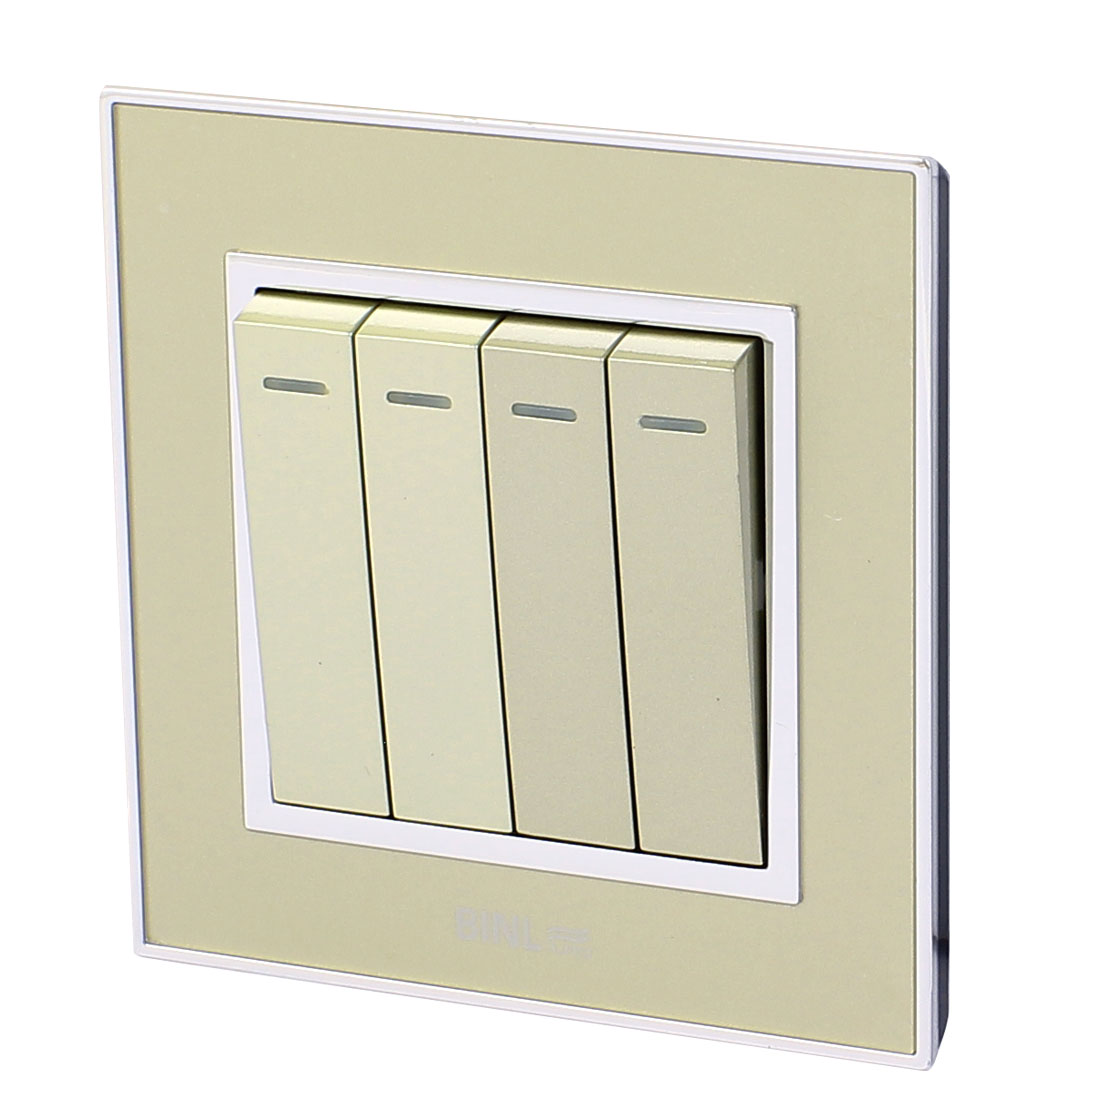 4 Gang 2 Way On/Off Press Button Wall Mounted Switch Plate AC 220V 10A w Status Light